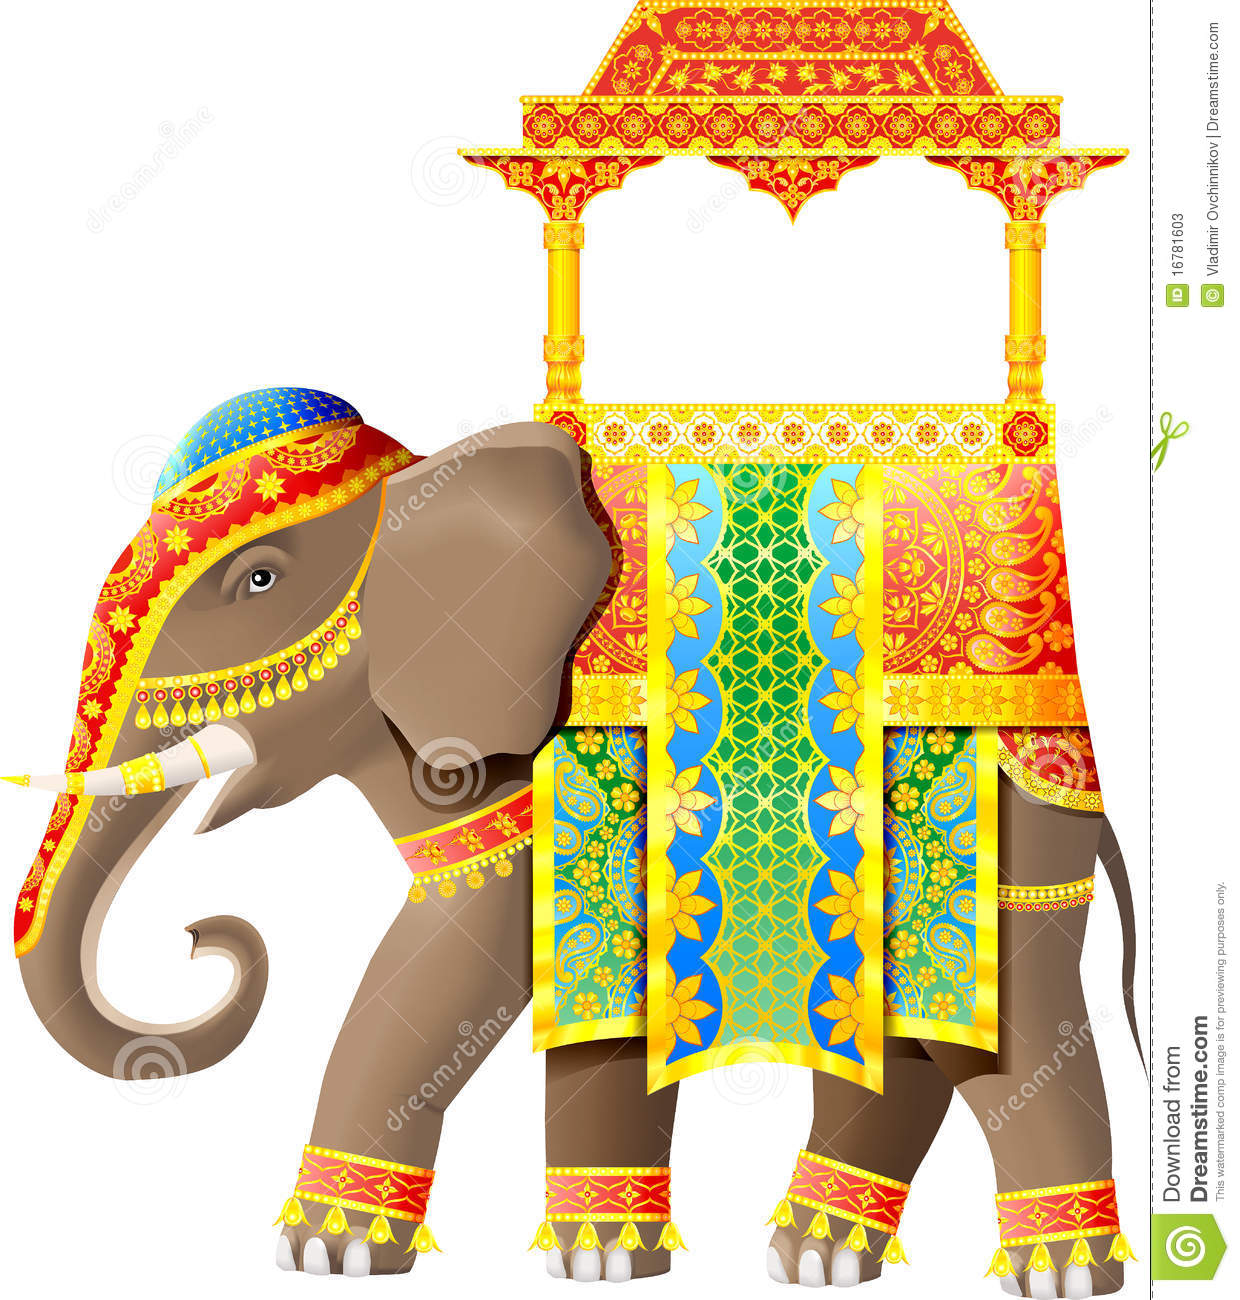 Http Www Dreamstime Com Stock Photos Indian Elephant Image16781603